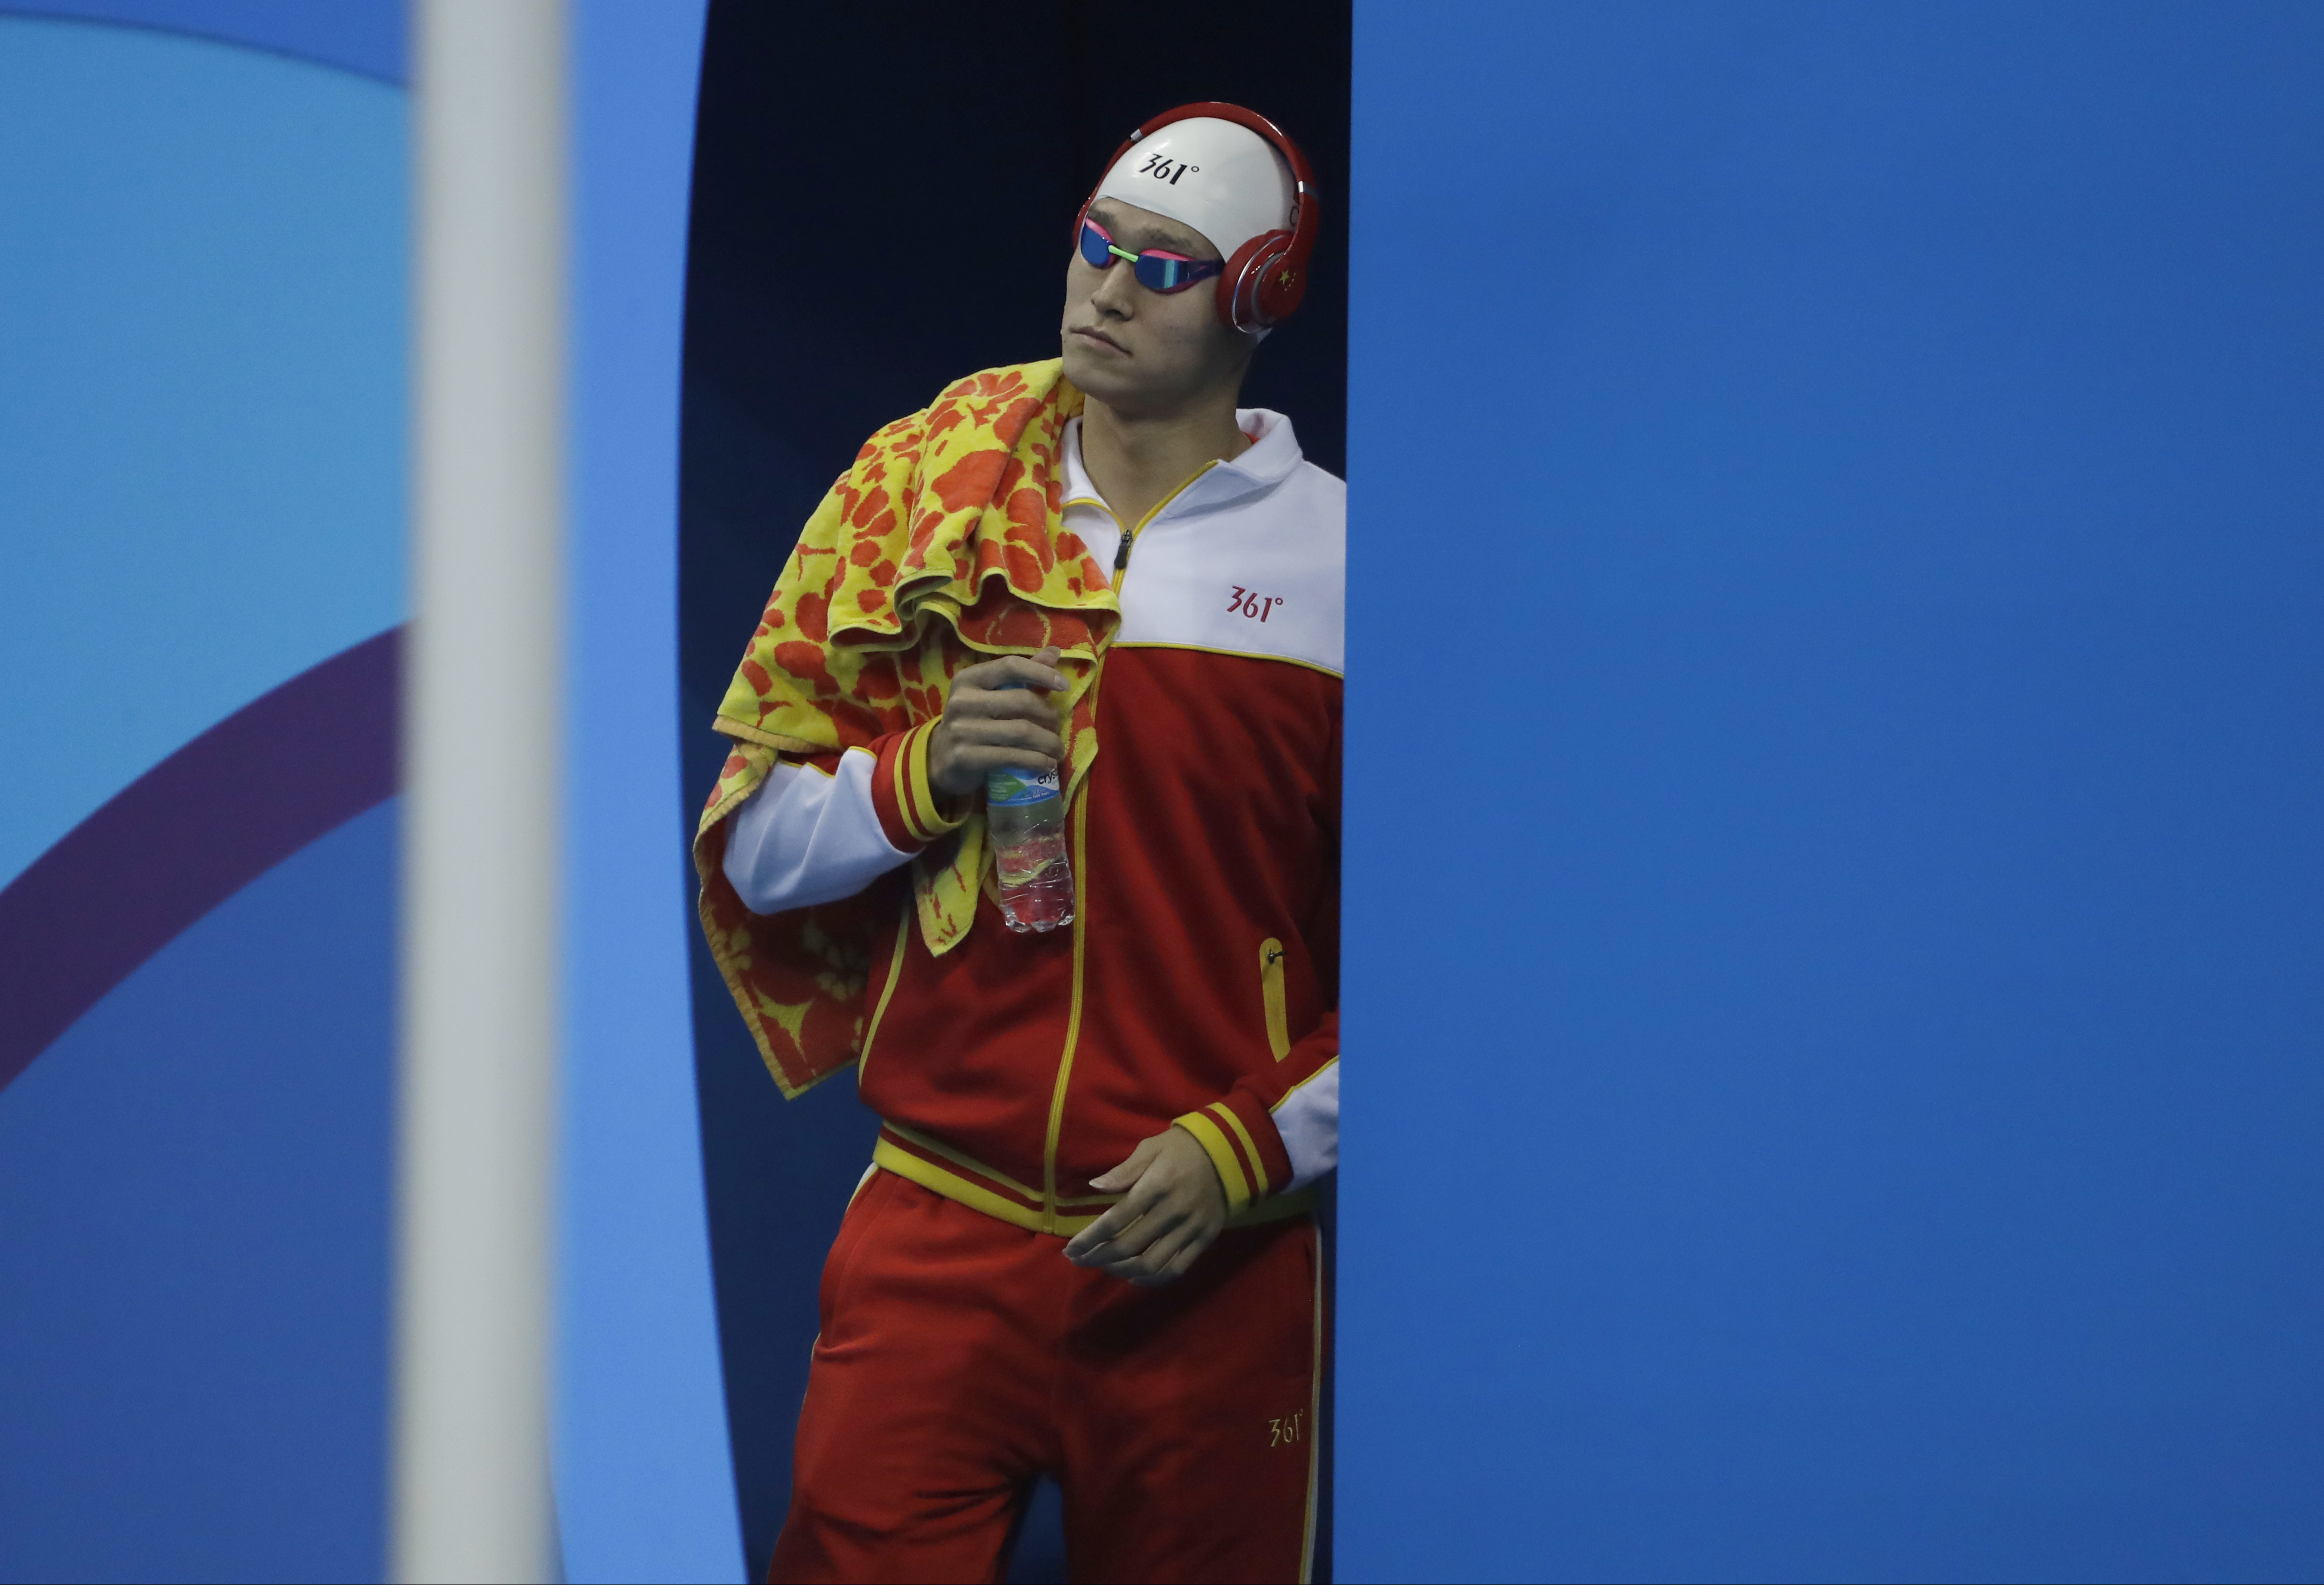 China's Sun Yang arrives for the final of the men's 400-meter freestyle during the swimming competitions at the 2016 Summer Olympics, Saturday, Aug. 6, 2016, in Rio de Janeiro, Brazil. (AP Photo/Matt Slocum)